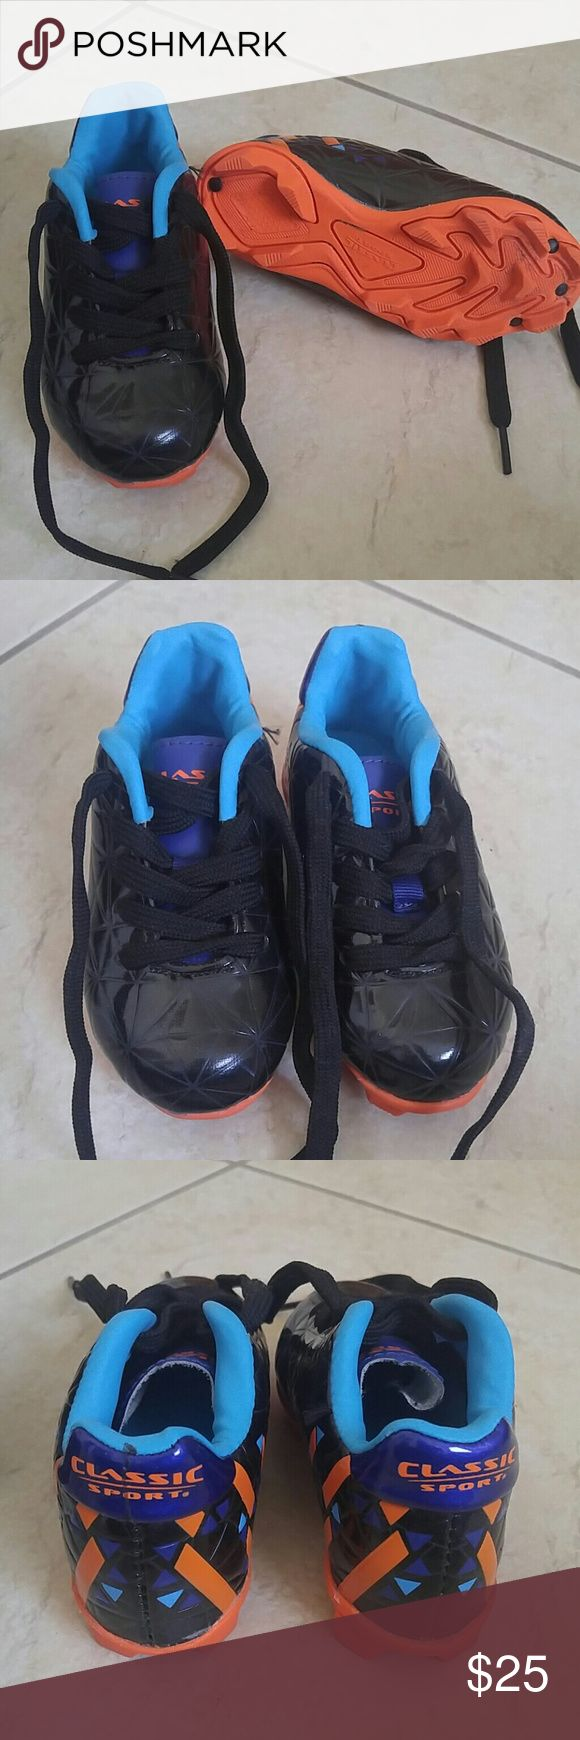 Toddler soccer cleats size 7T black & orange/blue Classic sport toddler cleats for your little soccer star. Size 7T. My son wore these once but they did not fit. My son has a wide foot. Would fit an average width.   These are very high quality soccer cleats and have only signs of use on the bottoms. Comes in original box. Classic sport  Shoes Sneakers